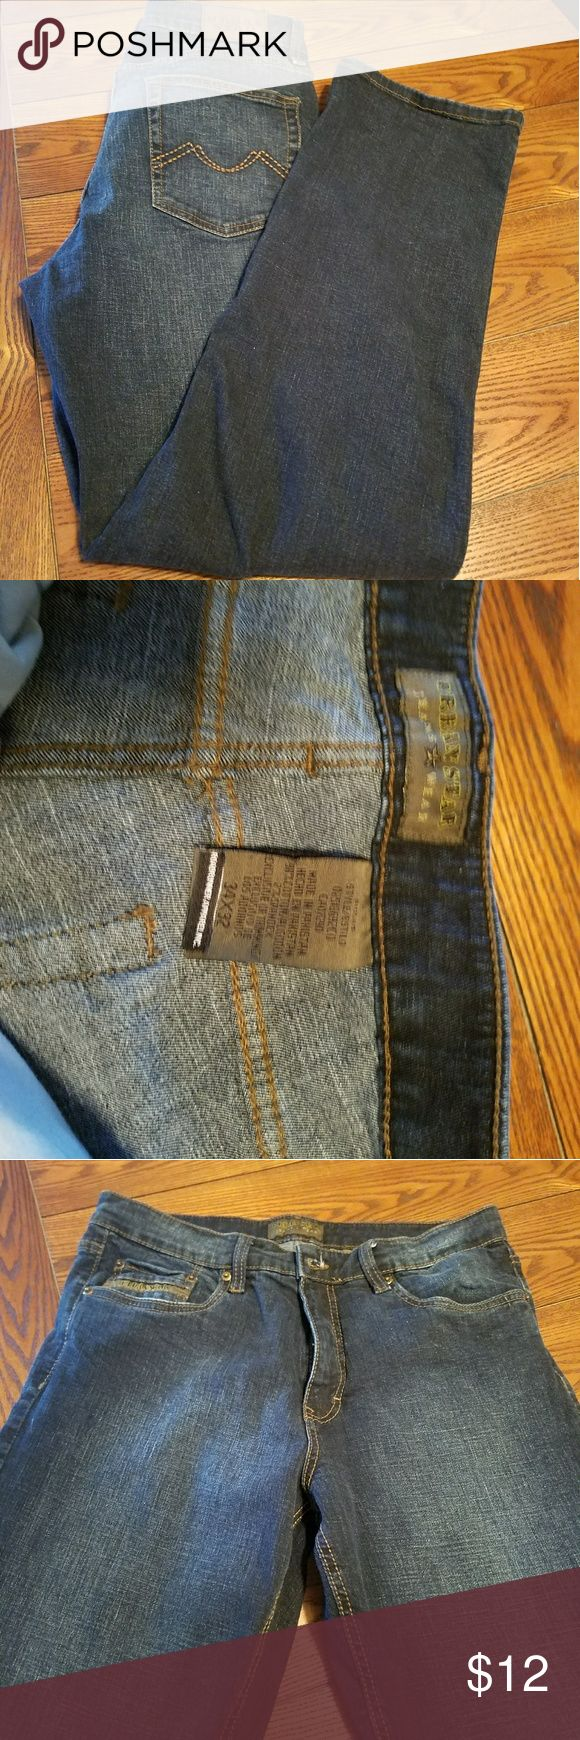 Like New Urban Star Jeans Like new condition urban star Jeans